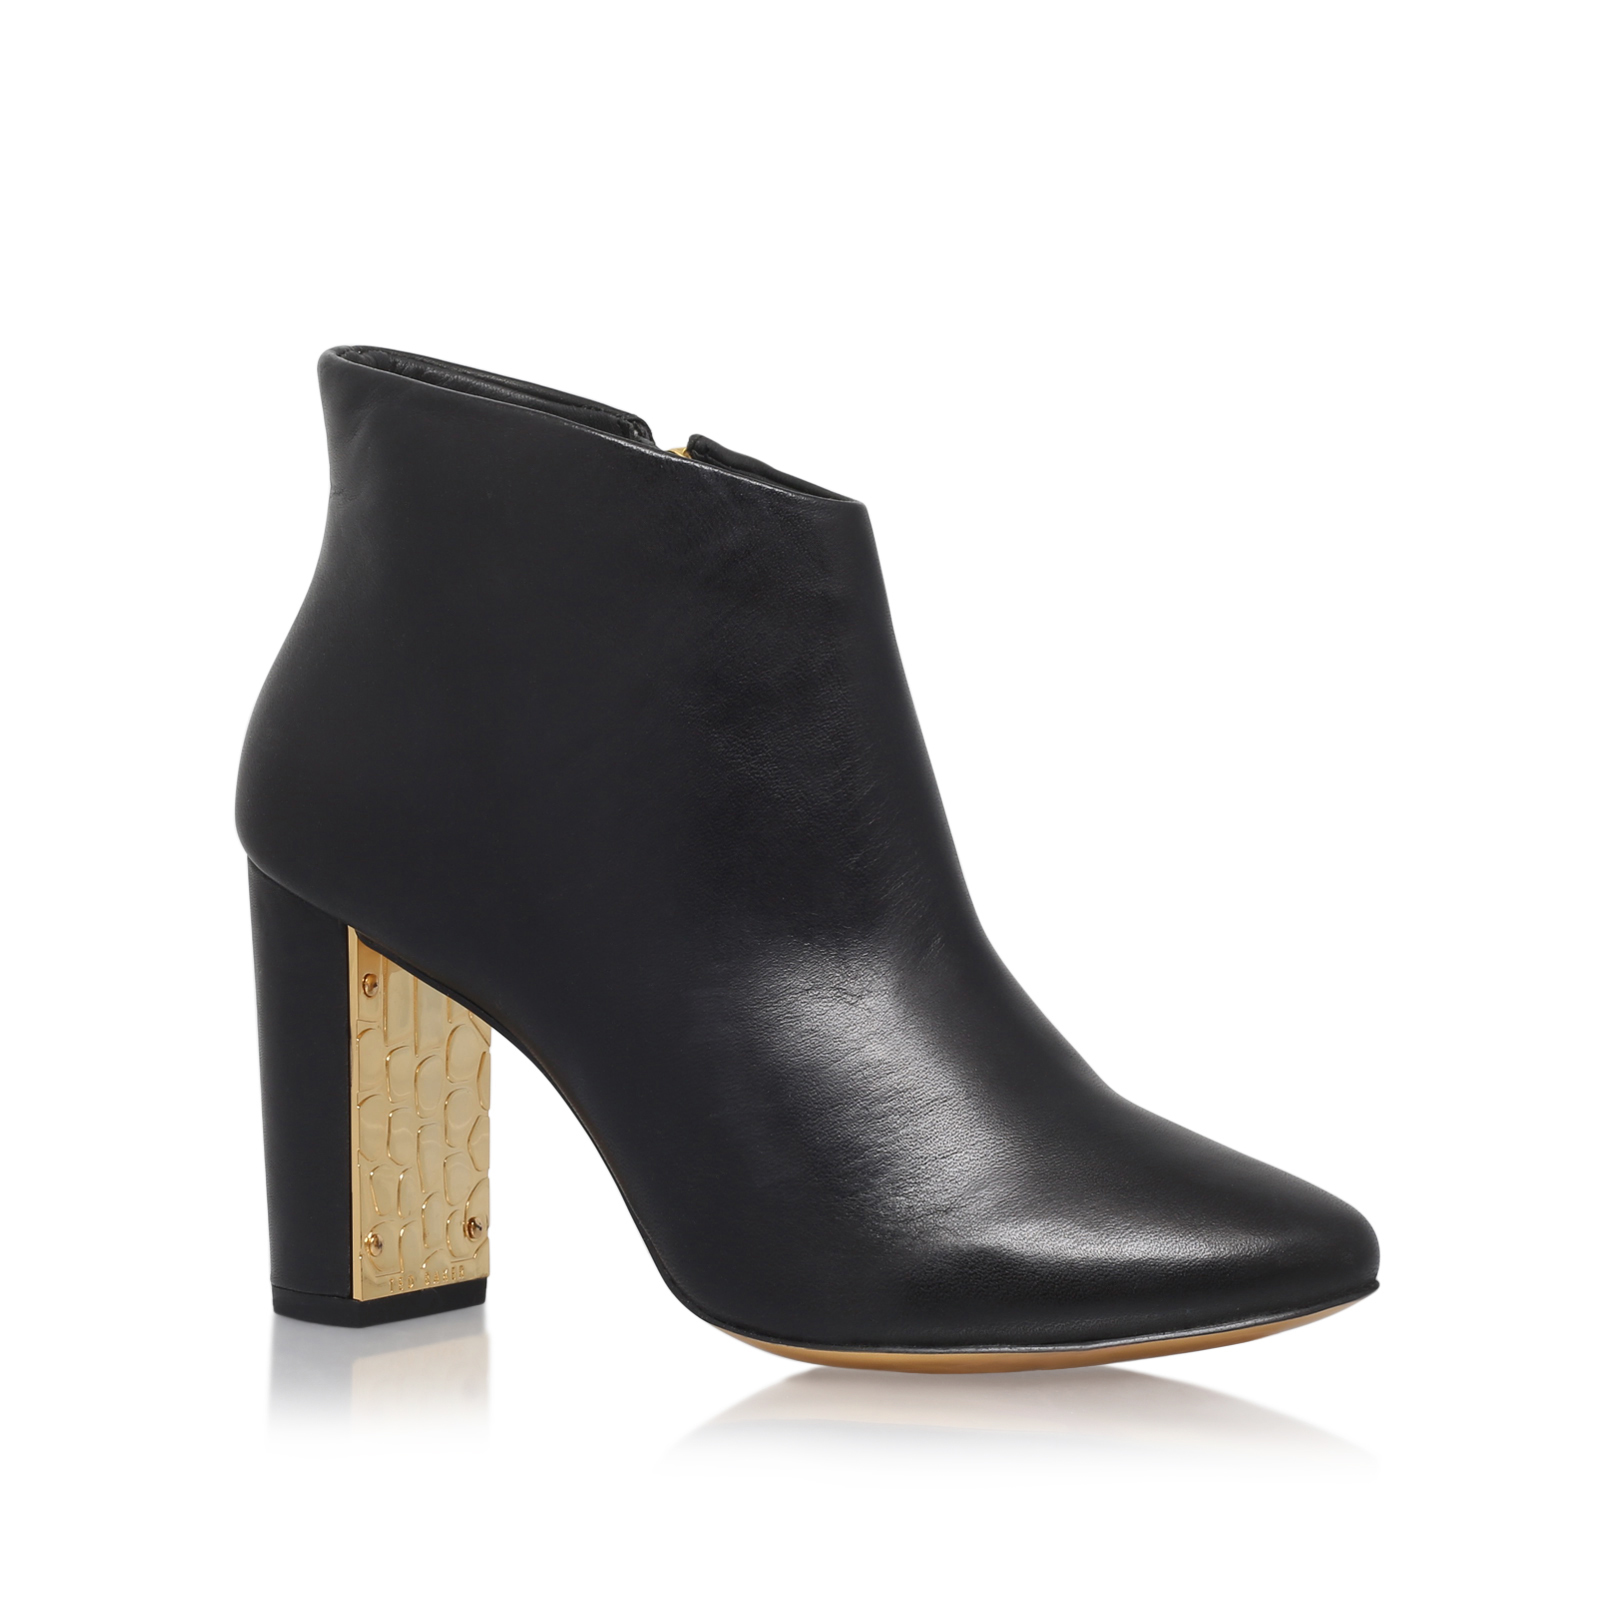 GLD CNTRST HEEL ANKL BOOT